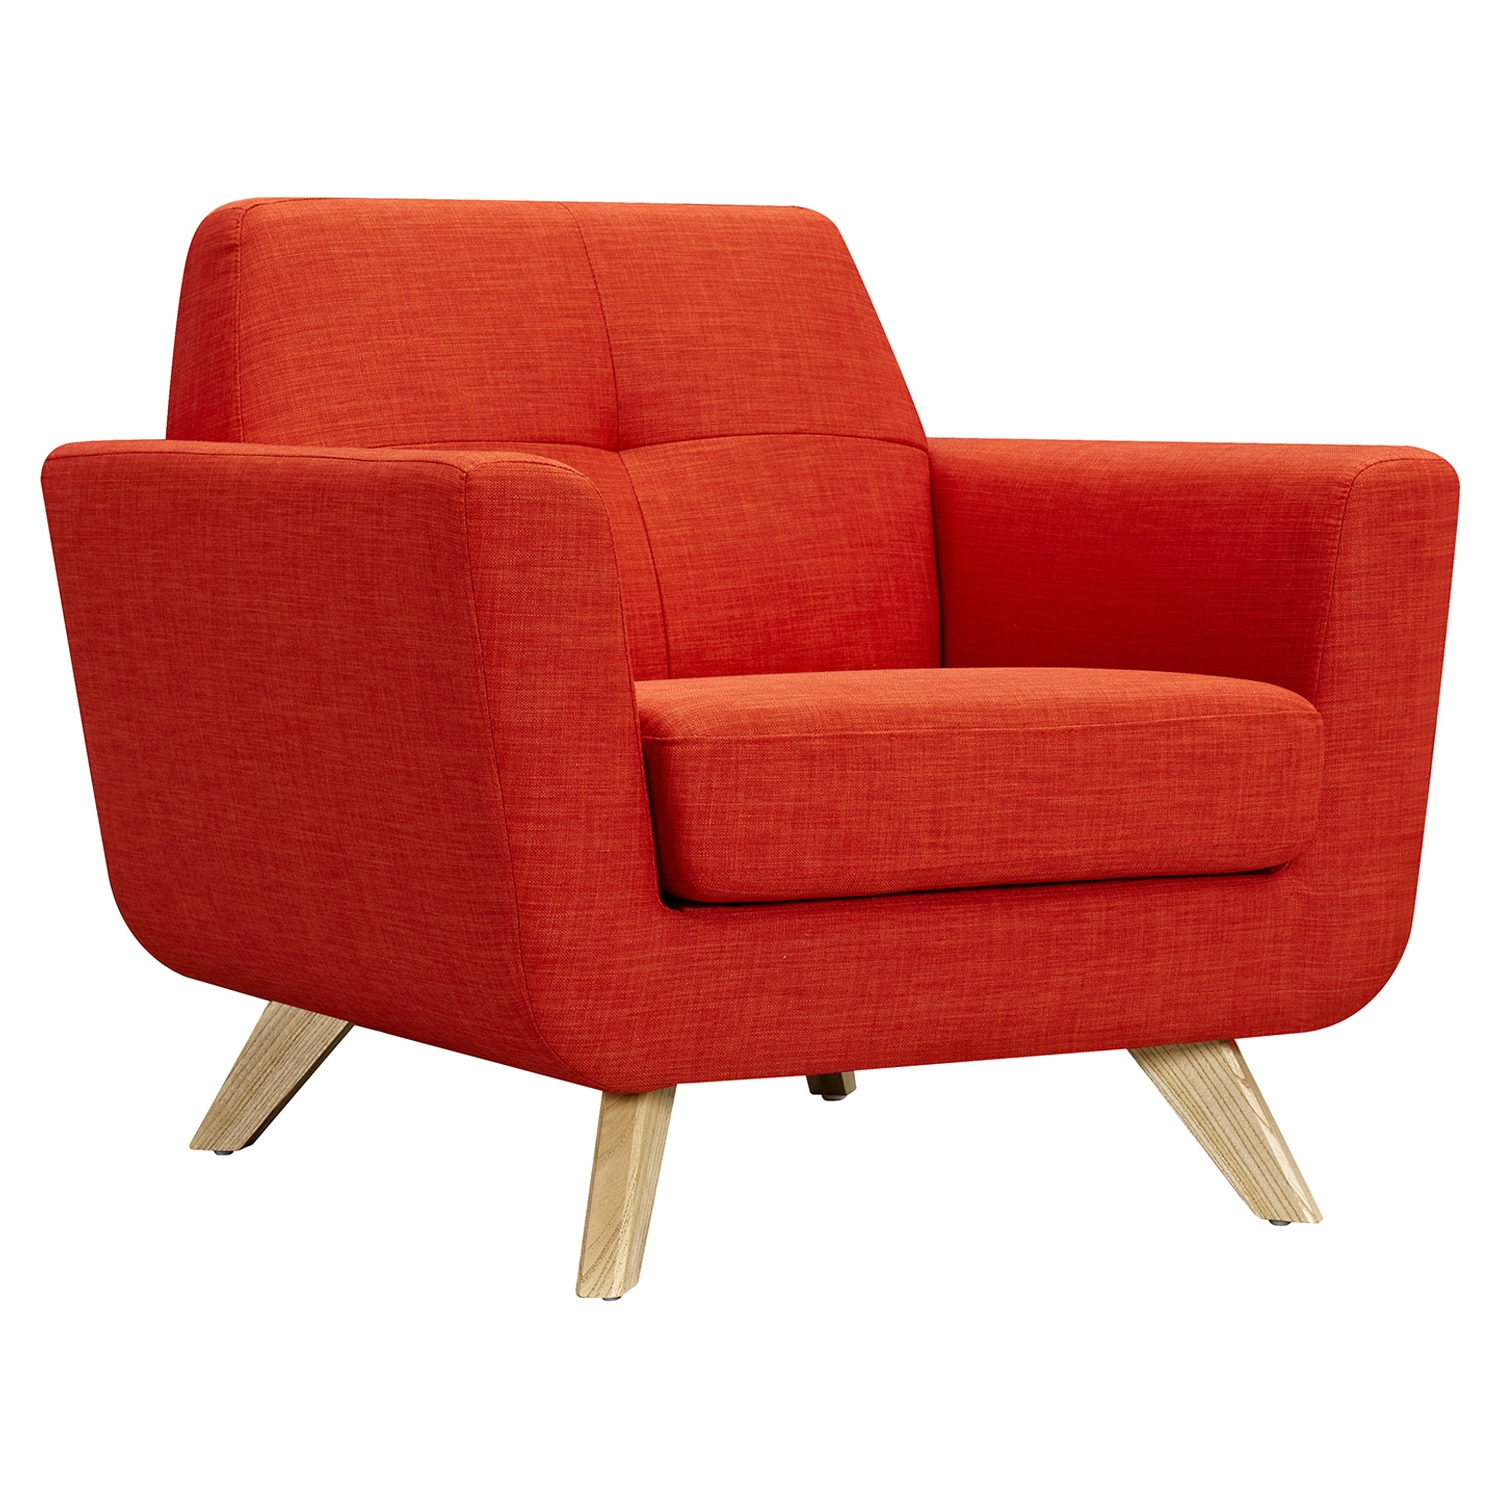 Dania Tufted Upholstery Armchair - Retro Orange